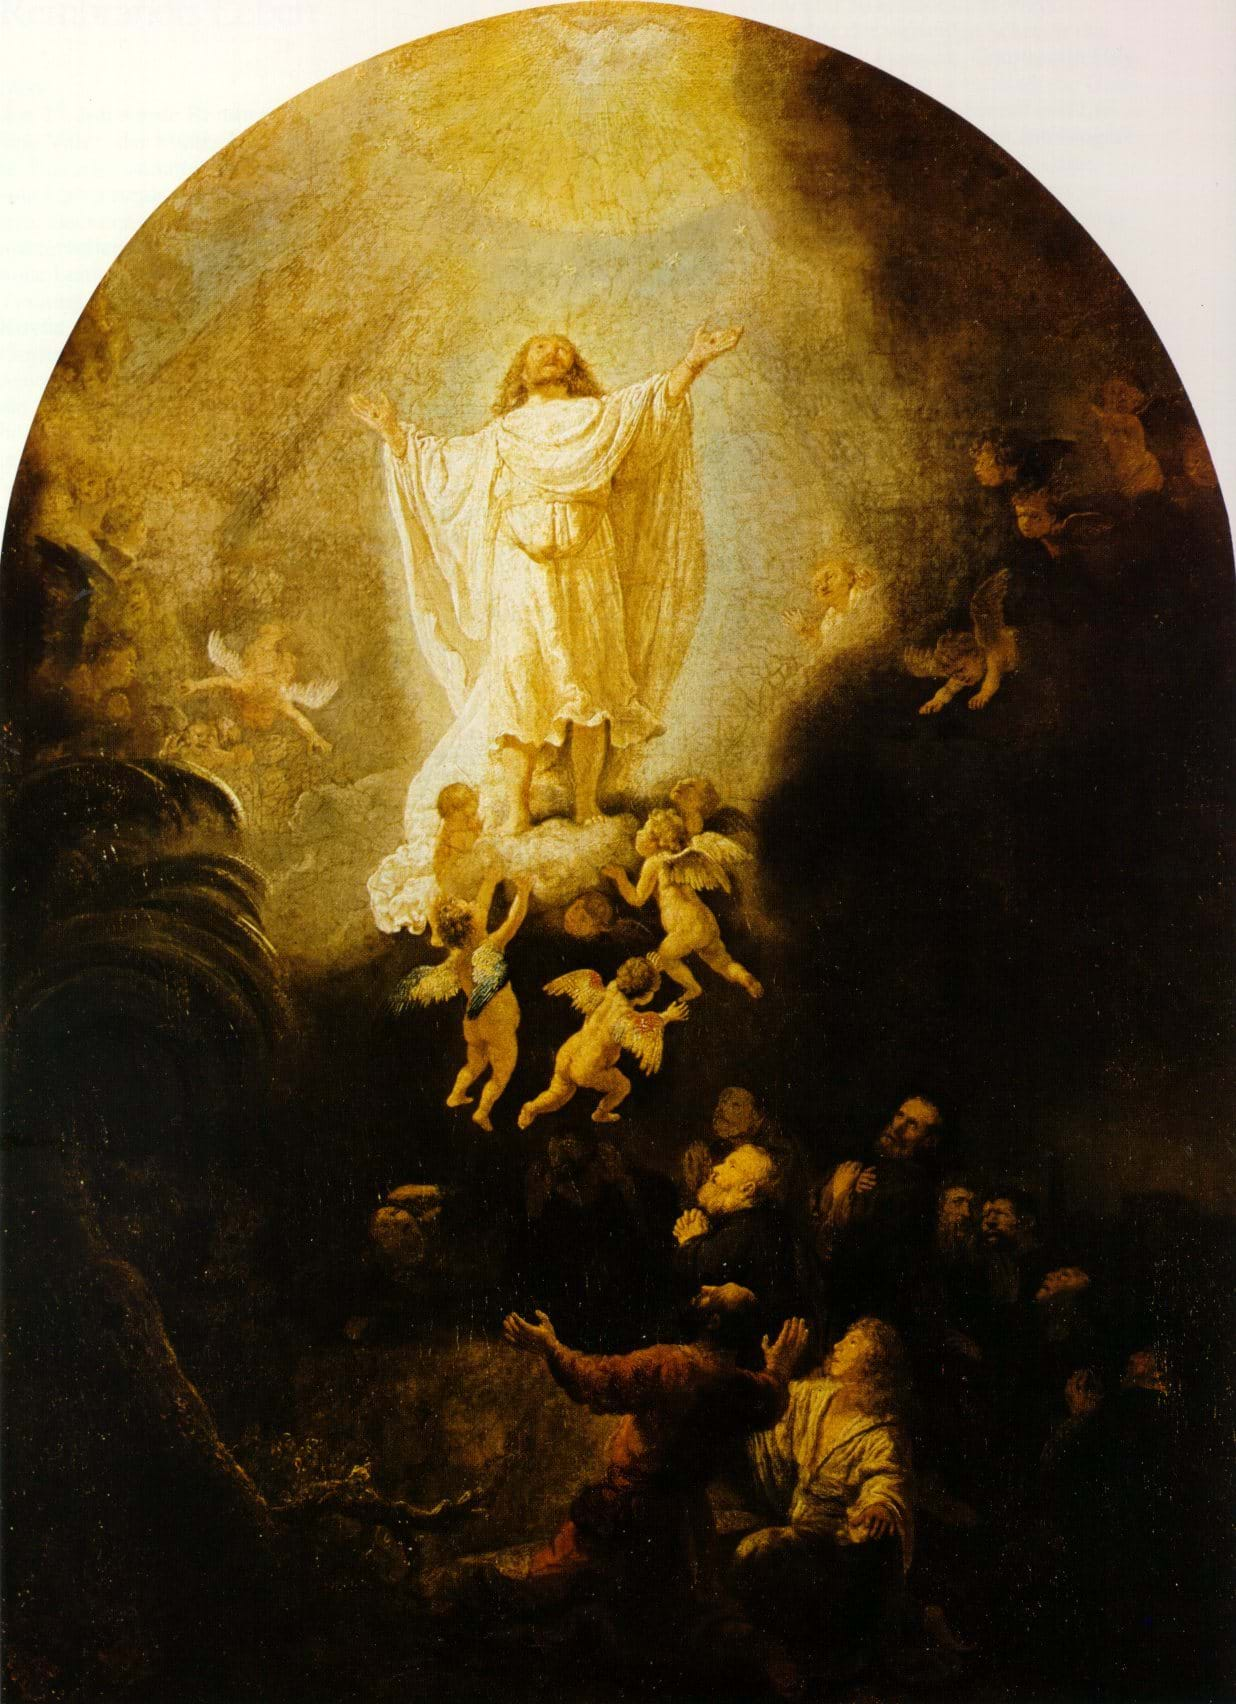 Ascension, by Rembrandt, 1636